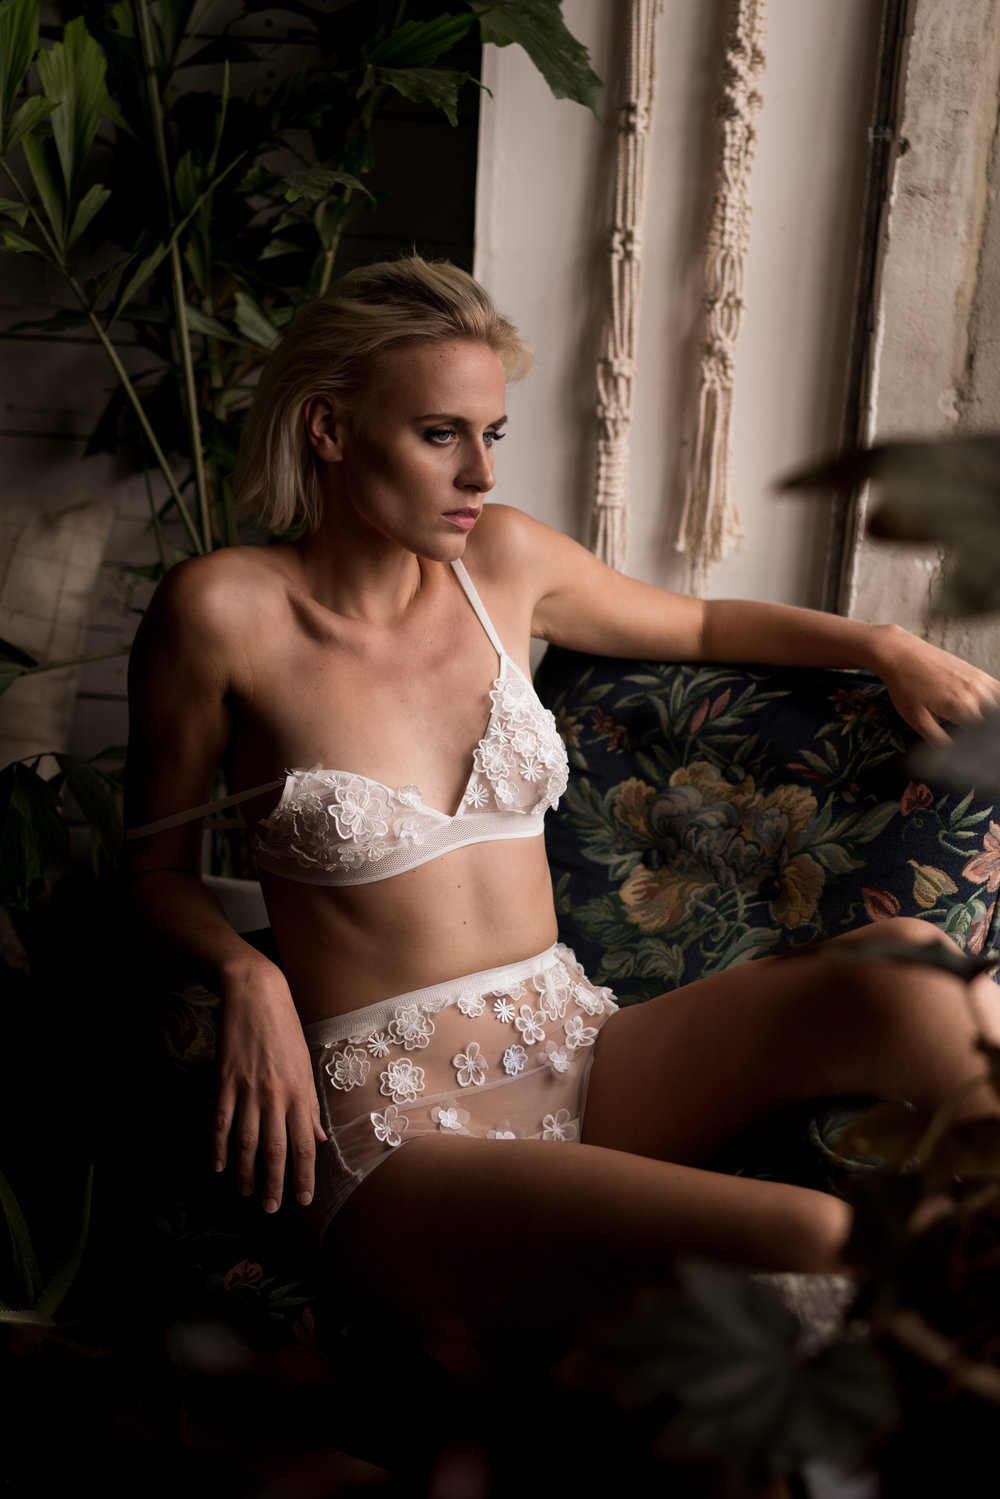 Shoot for Loulette Lingerie   Makeup and hair -Makeup By Joh  Photographer - Edelle Kenny  Model - Anne Windsland